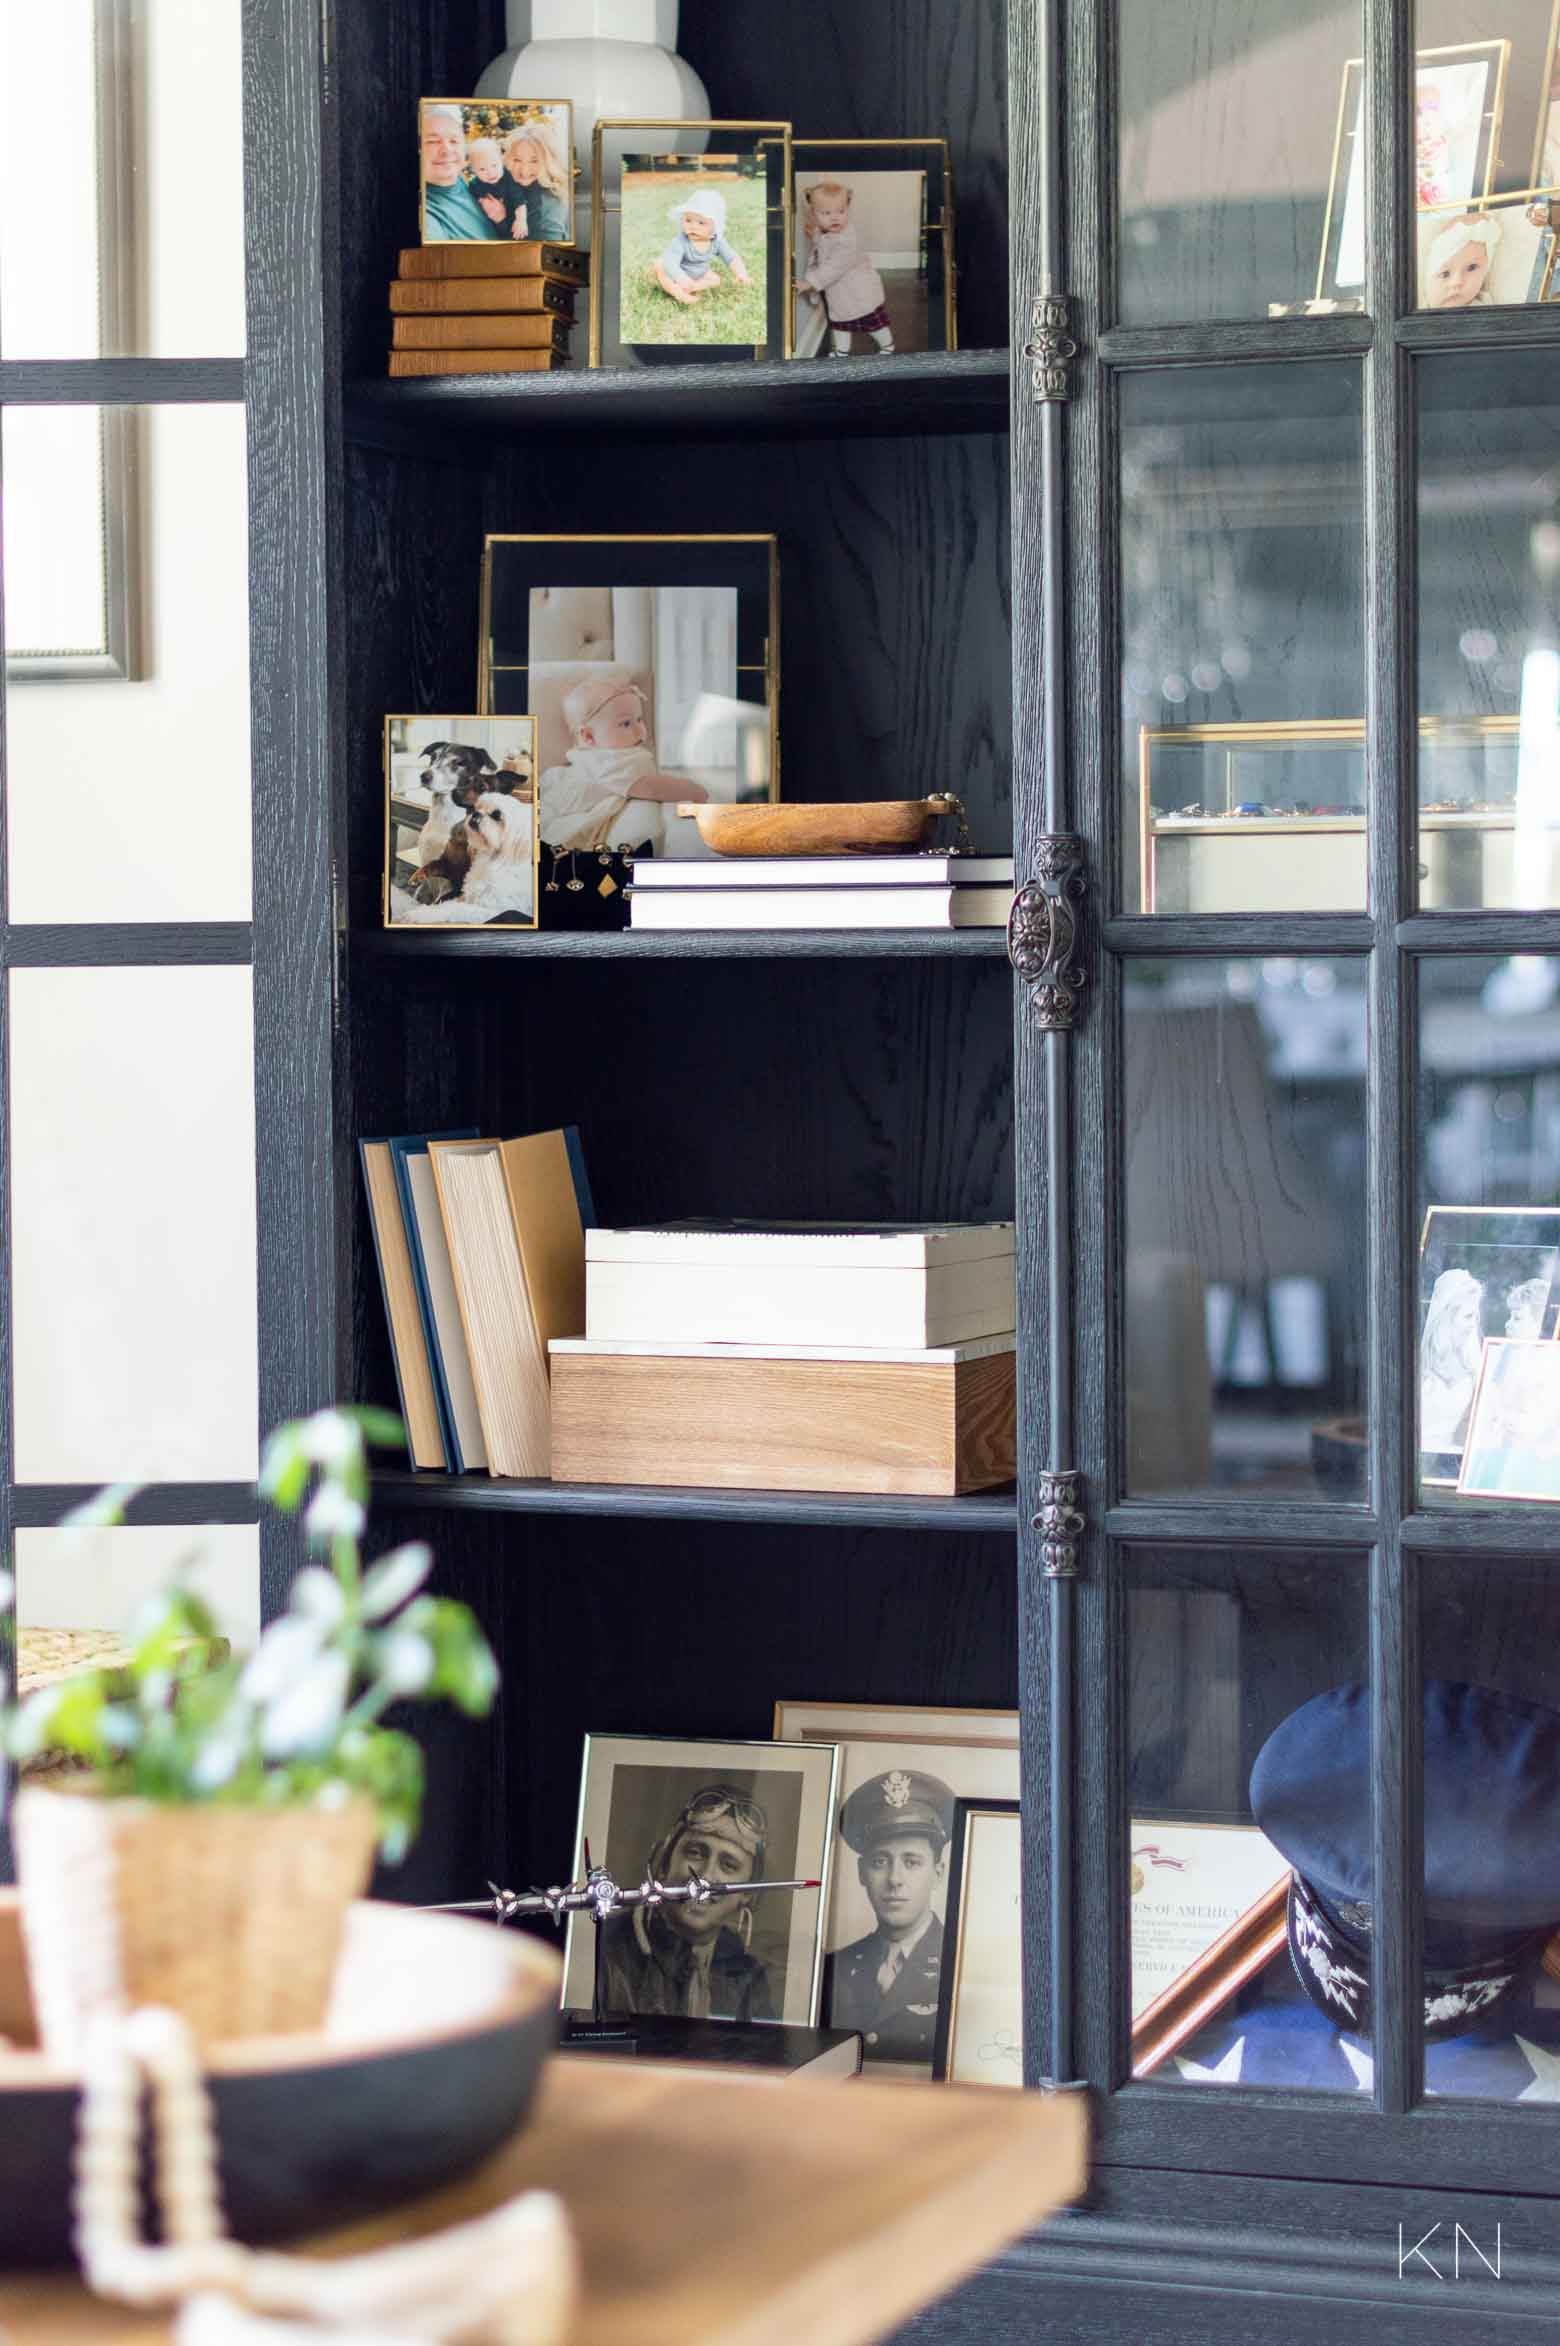 How to Decorate a Glass Door Cabinet with Special Family Heirlooms